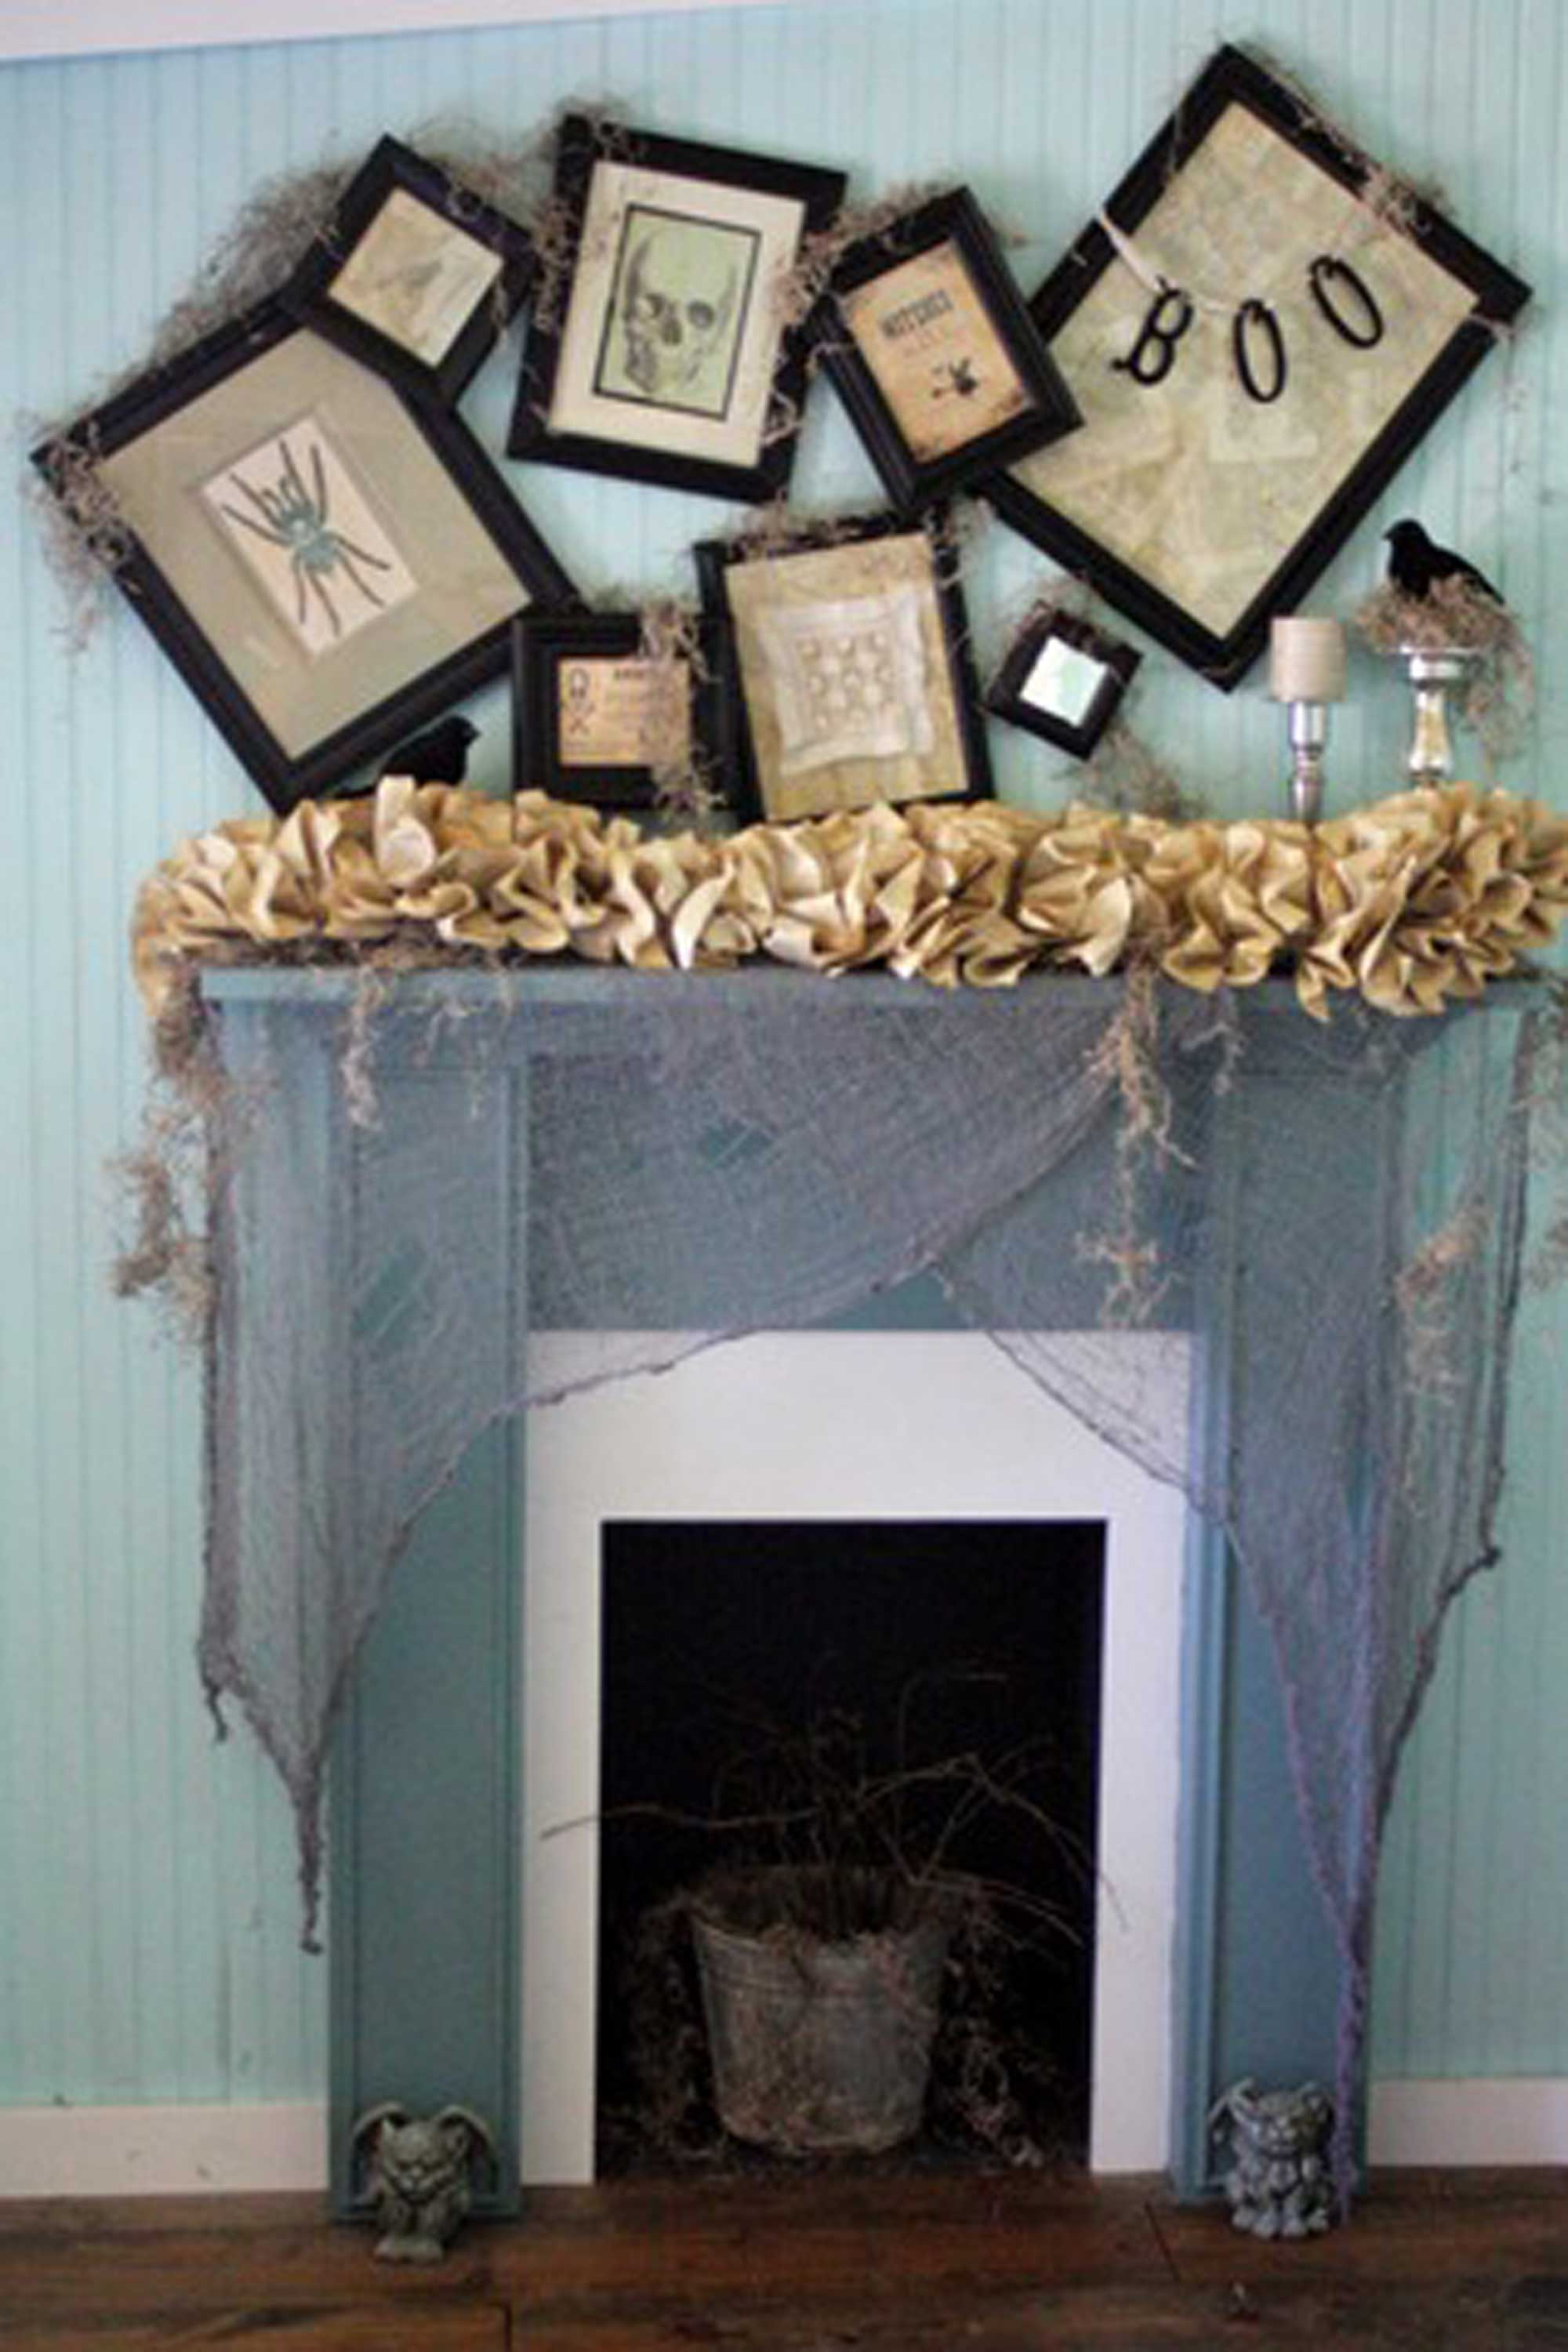 35 fall mantel decorating ideas halloween mantel decorations - Halloween Mantel Decor